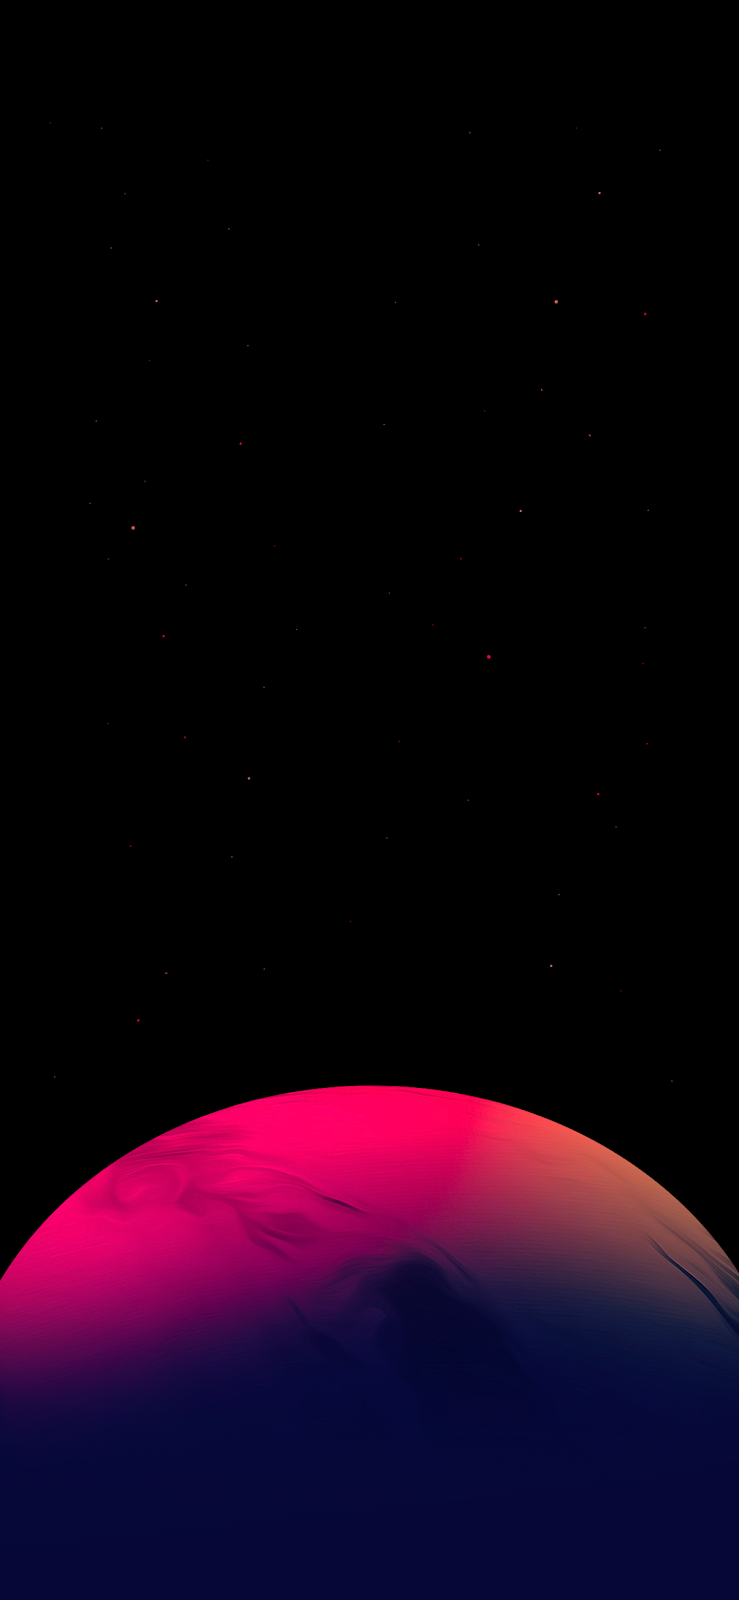 Planet Space By Ar72014 Iphone Xxsxrxsmax Art Space Iphone